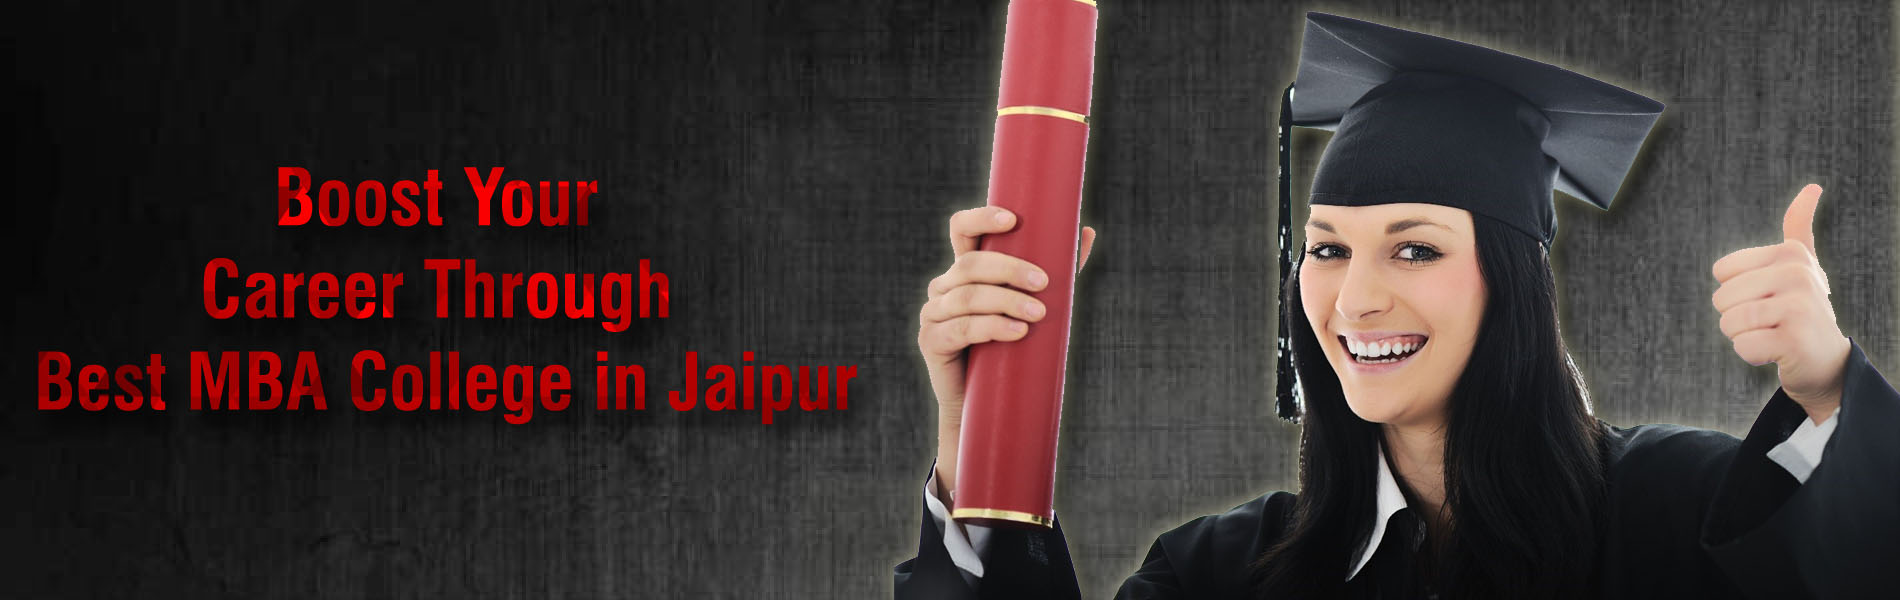 Boost-Your-Career-Through-Best-MBA-College-in-Jaipur